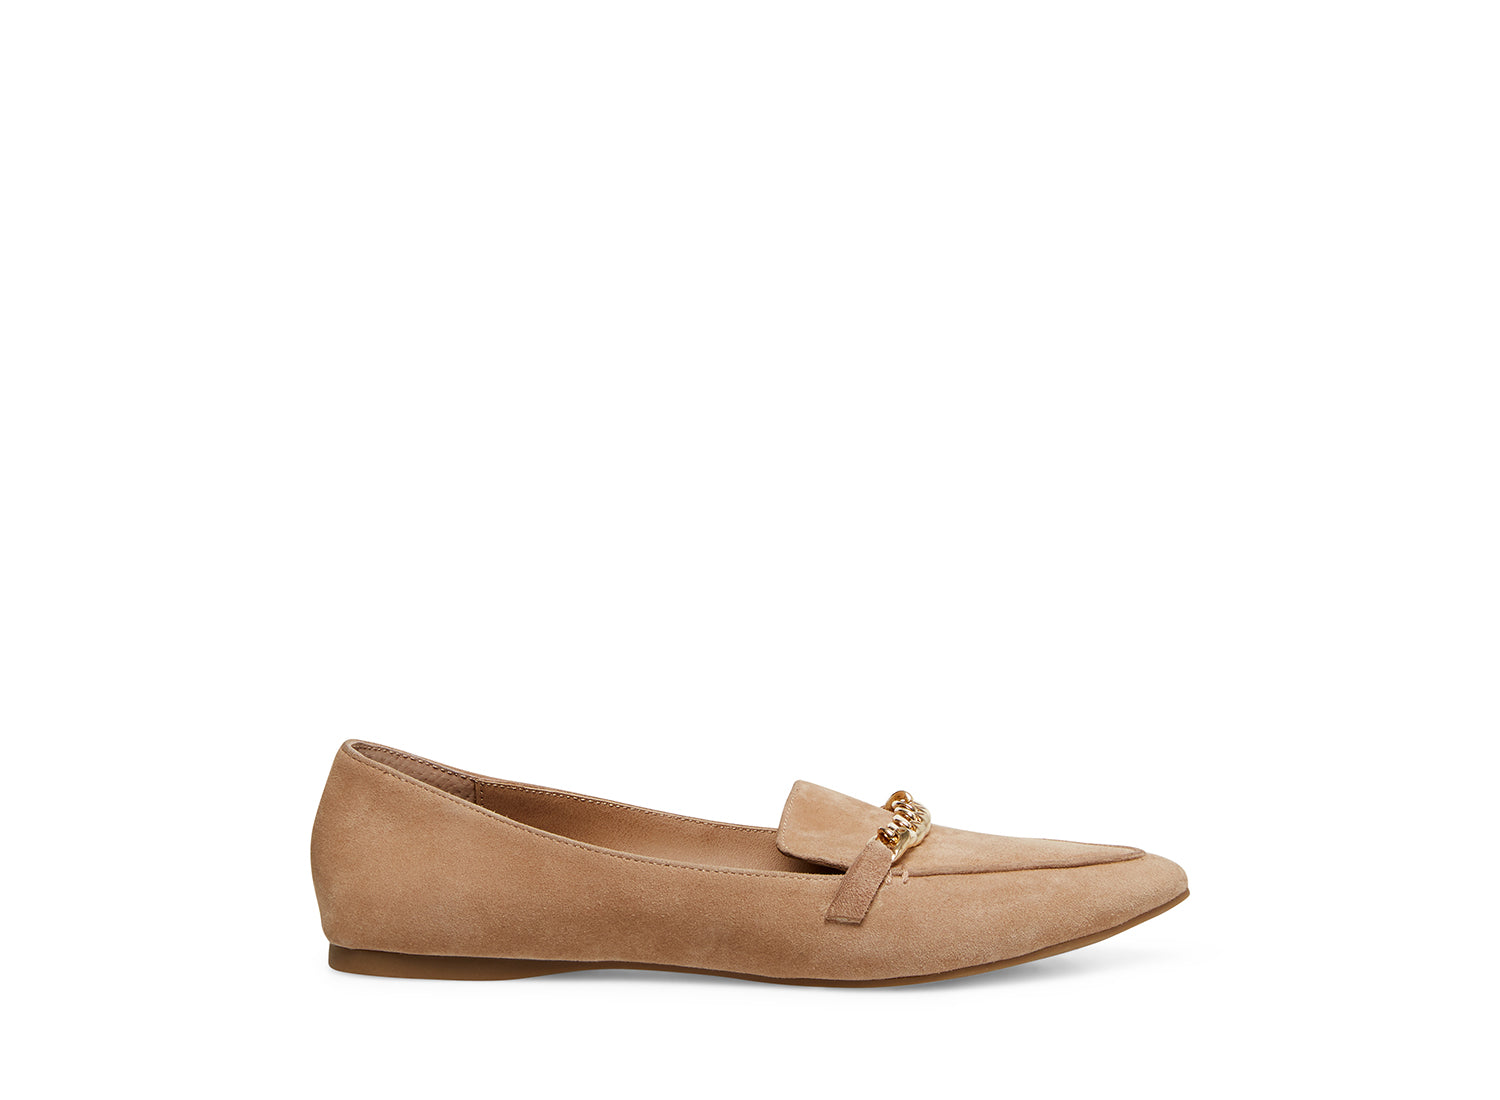 c74ee9d47dc FARRELL NATURAL SUEDE